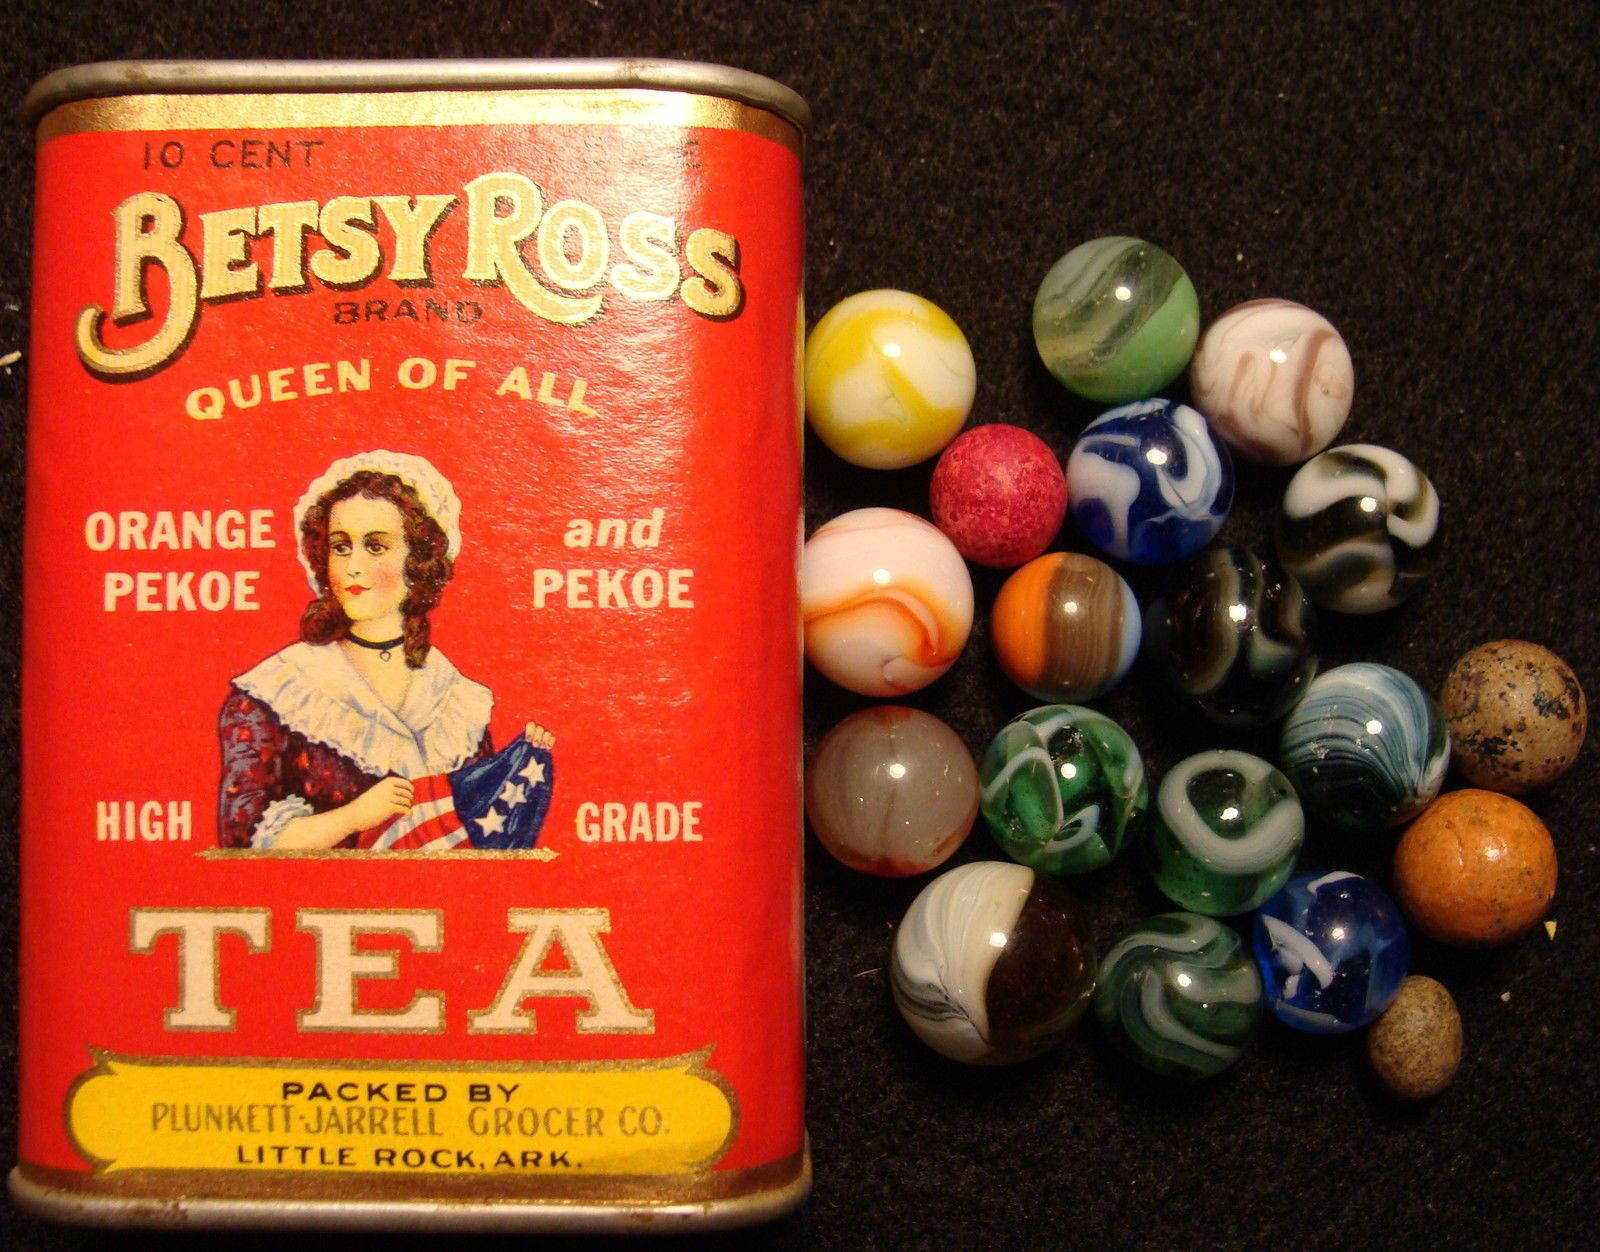 ANTIQUE BETSY ROSS TIN BANK LITTLE ROCK ARK VINTAGE GLASS TOY OLD MARBLES GLASS  picclick.com